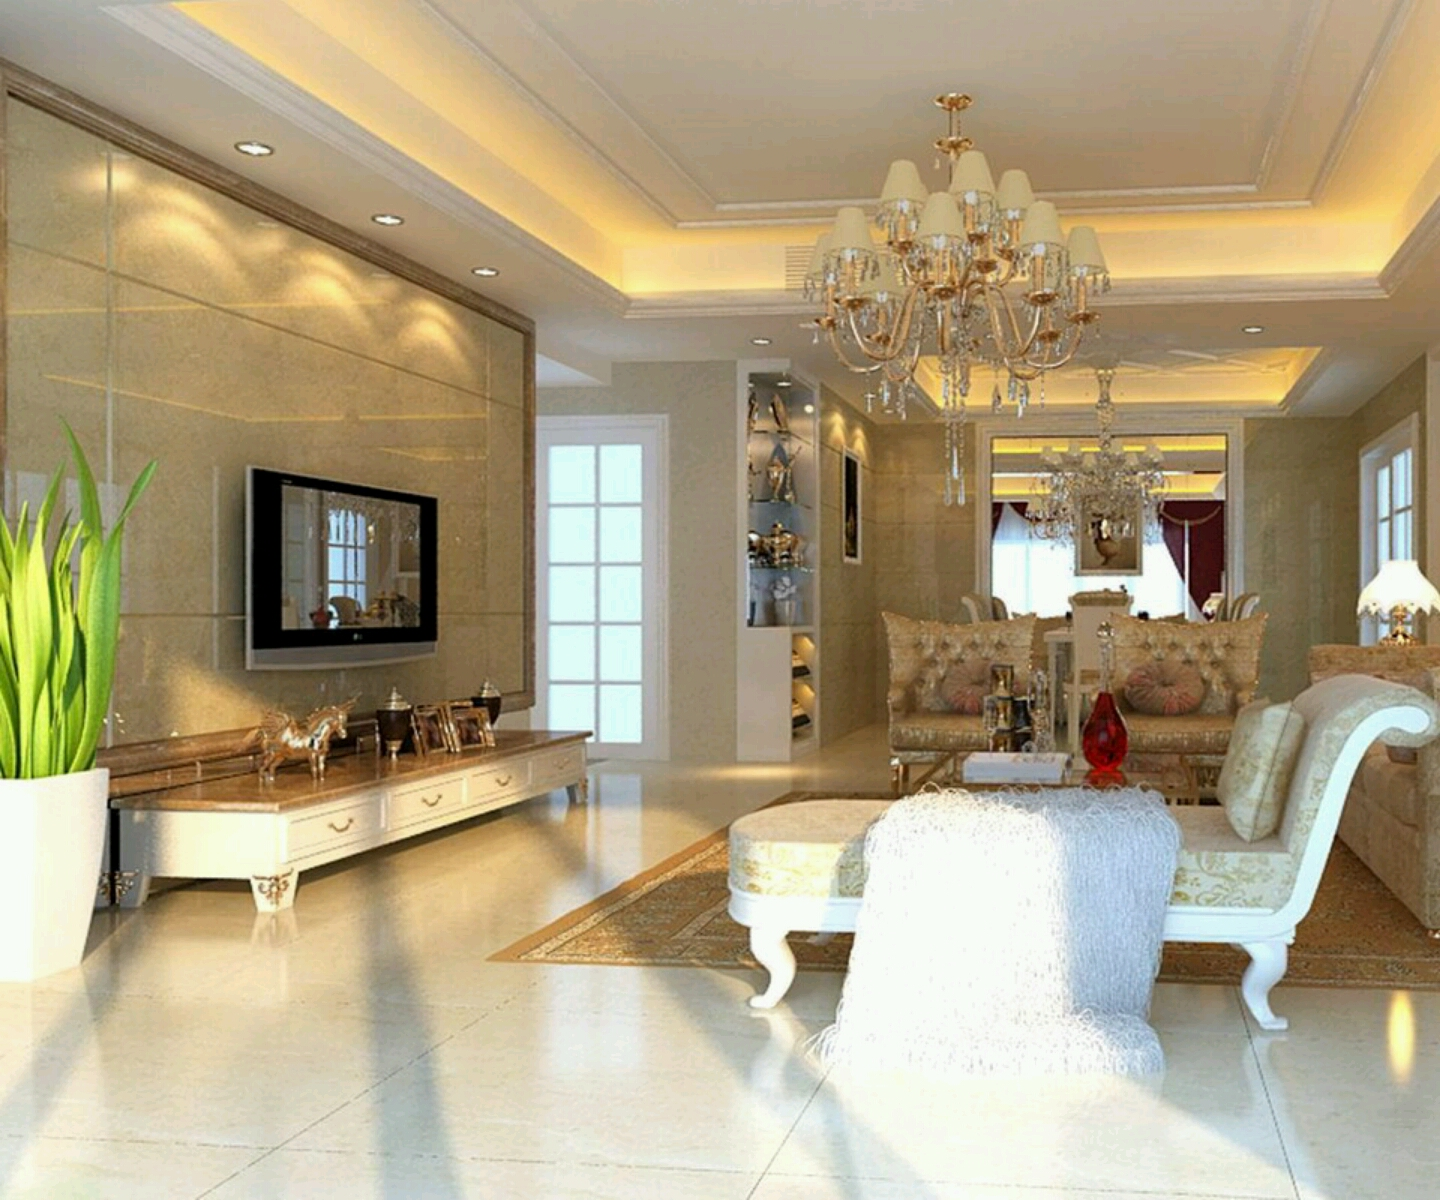 New home designs latest luxury homes interior decoration for Interior design styles living room 2015